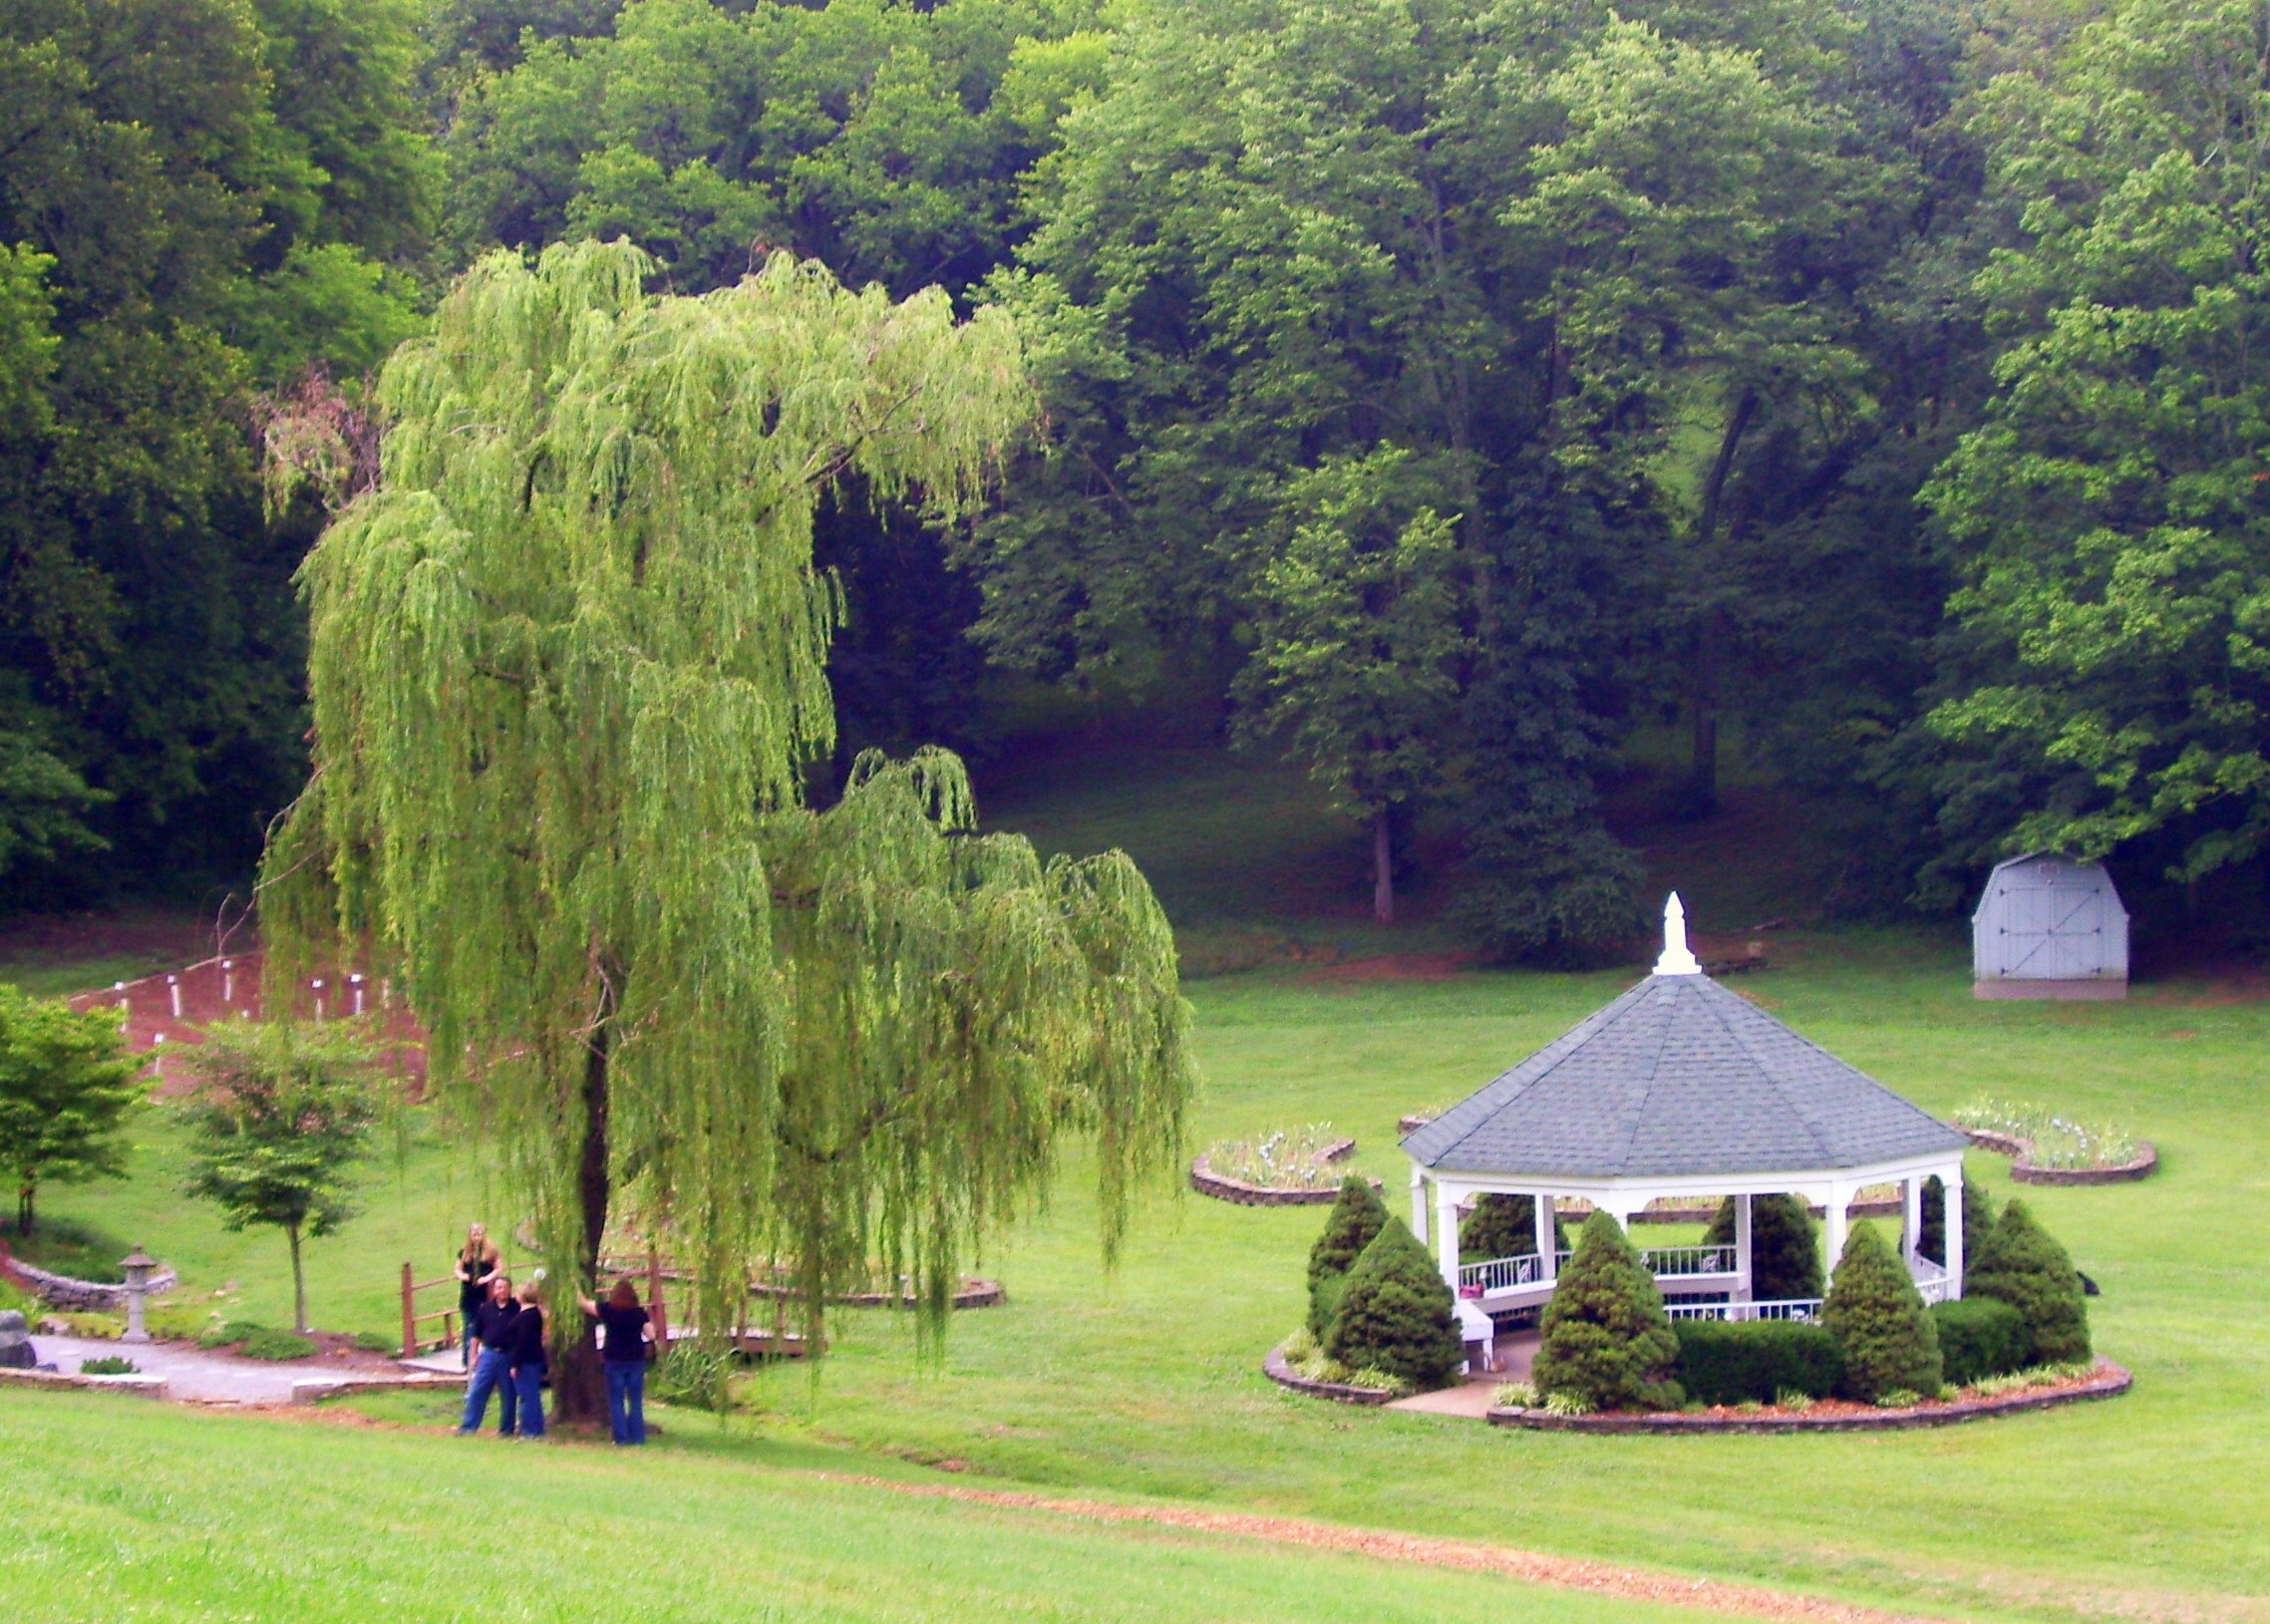 Nashville S Best Portrait Locations The Brentwood Tn Guide